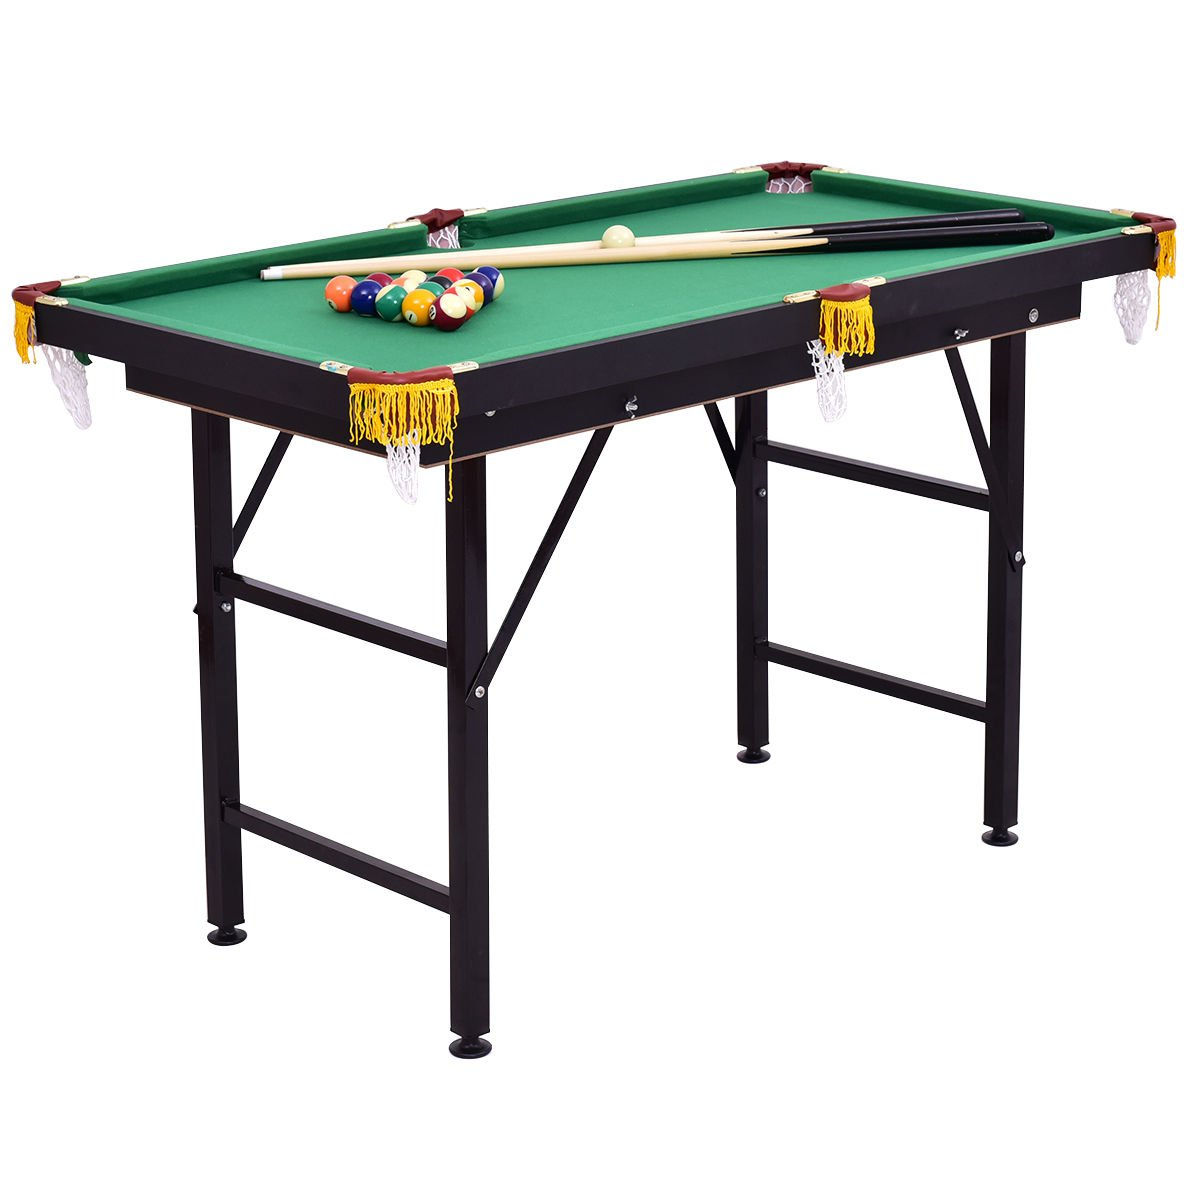 Costzon 47'' Billiard Table Pool Table with Cues, Triangle and Chalk